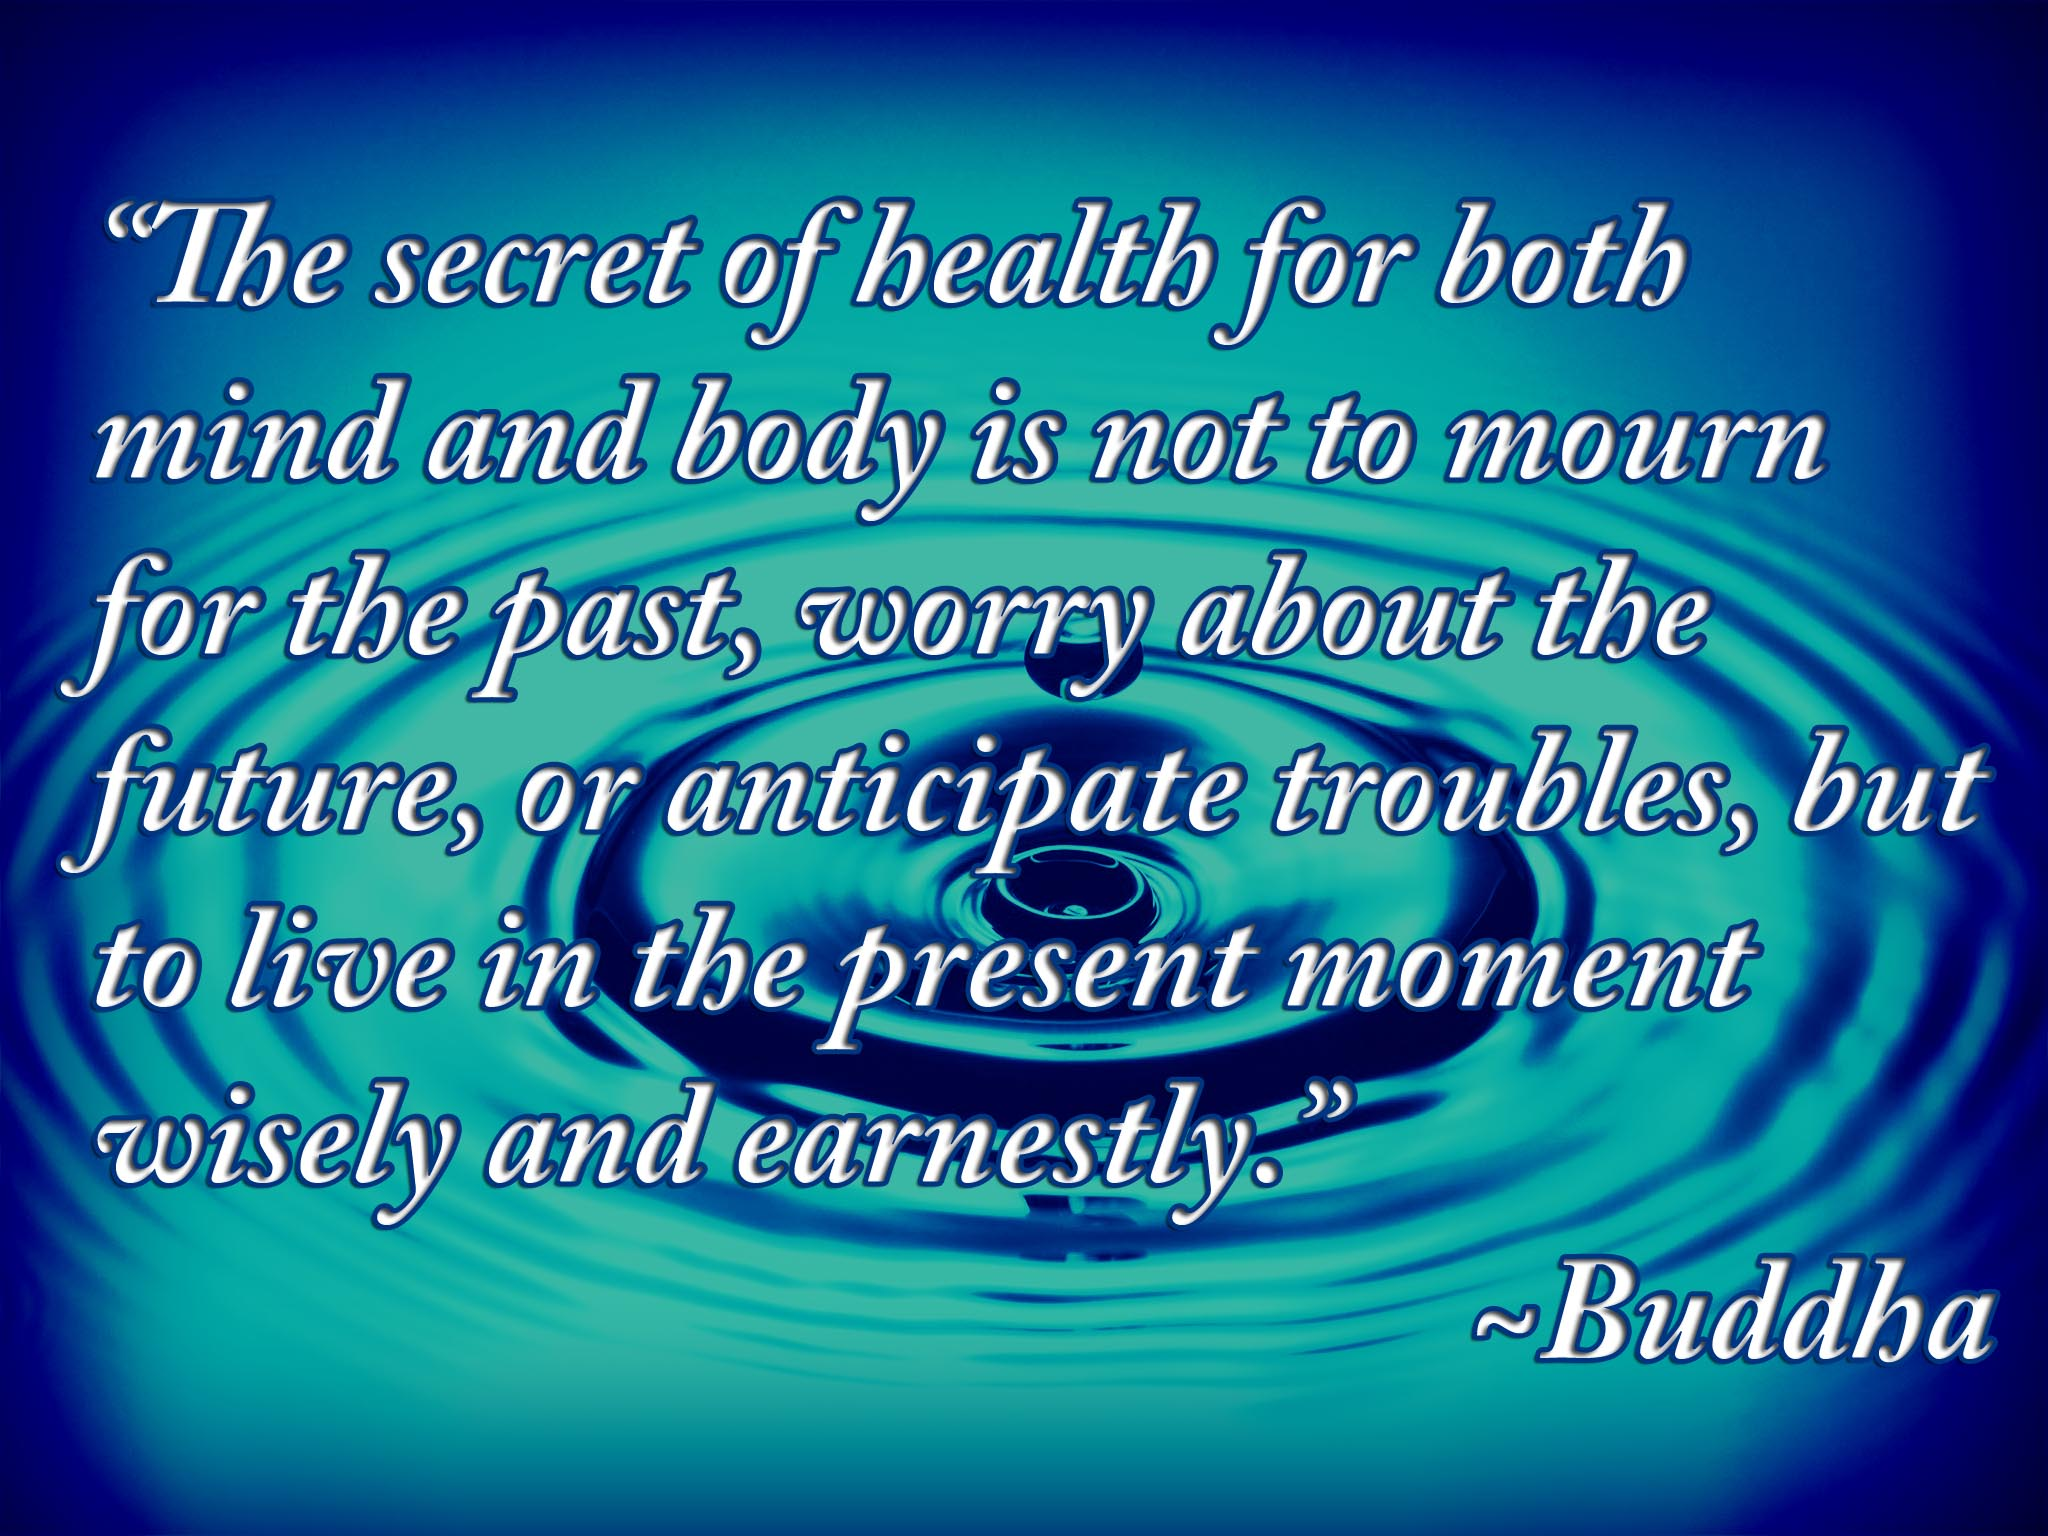 The secret of health for both mind and body is not to mourn for the past, worry about the future, or anticipate troubles, but to live in the present moment wisely... Buddha